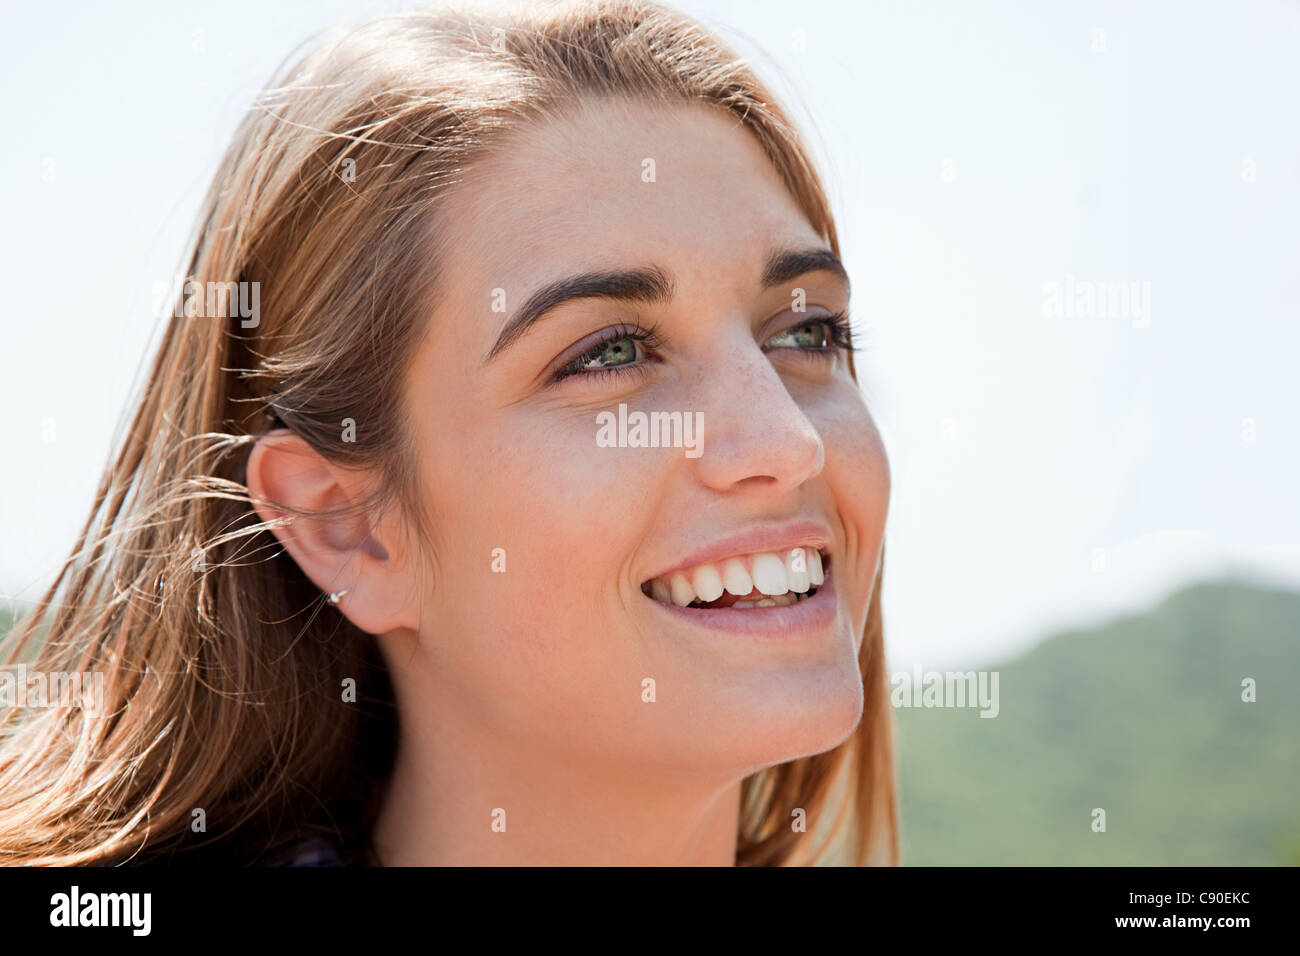 Close up portrait of blonde haired young woman - Stock Image